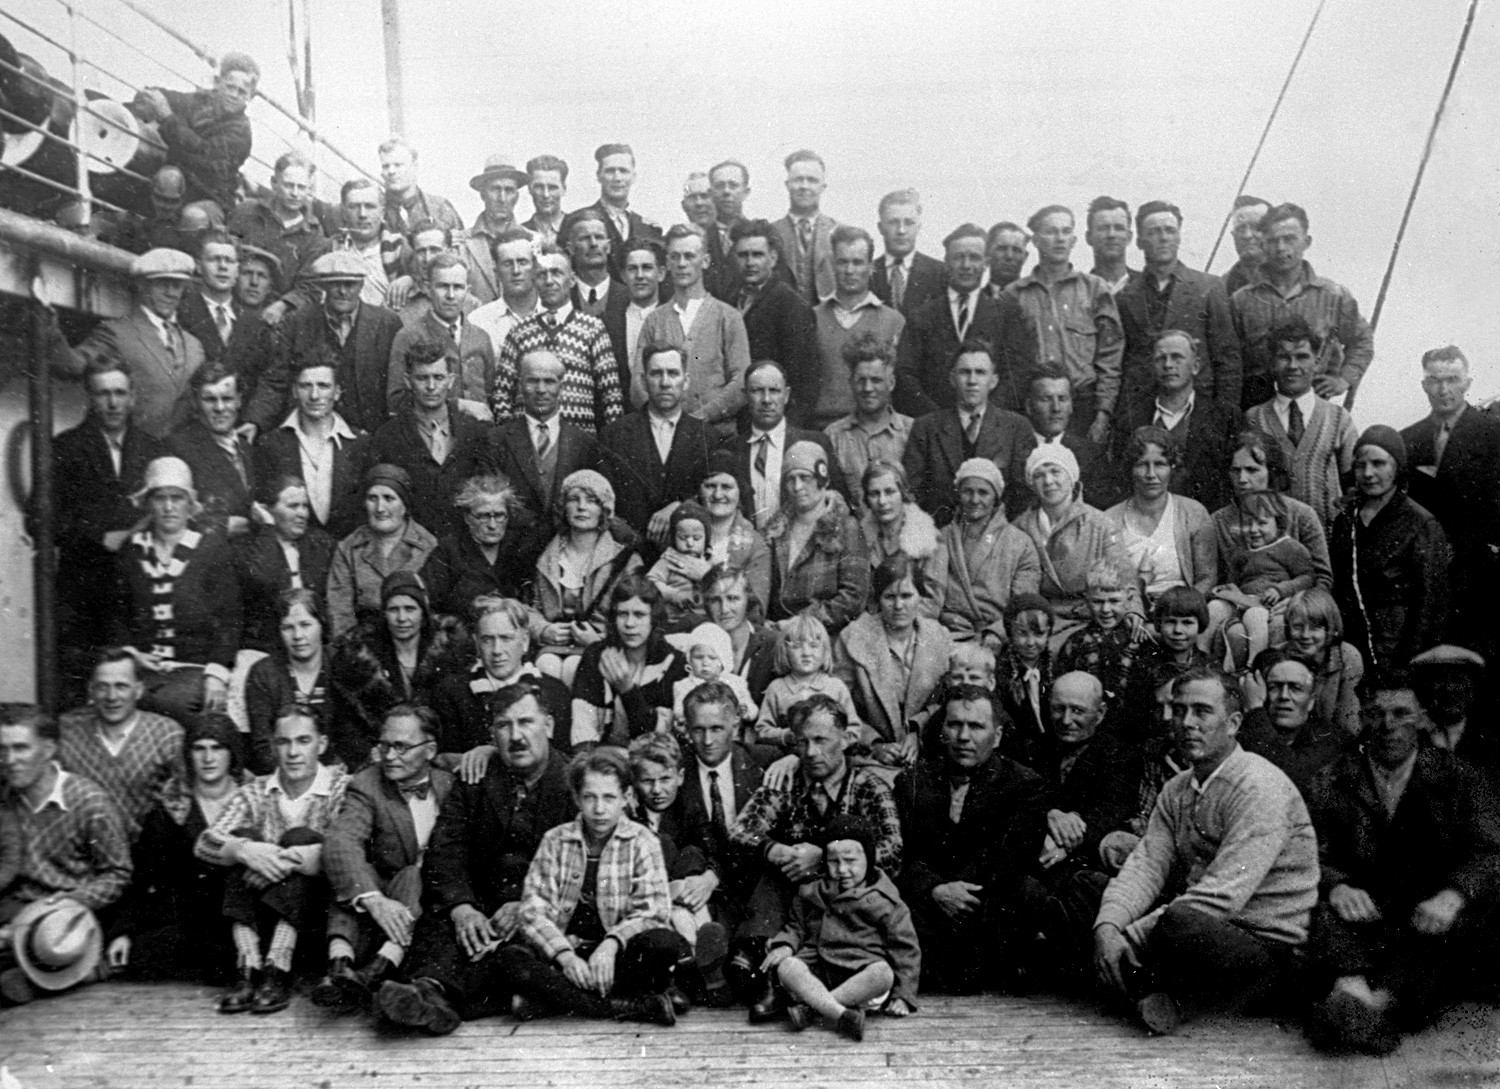 First groups of workers from the U.S. and Canada visiting Soviet Union. As you can see, black folks were rare among them.